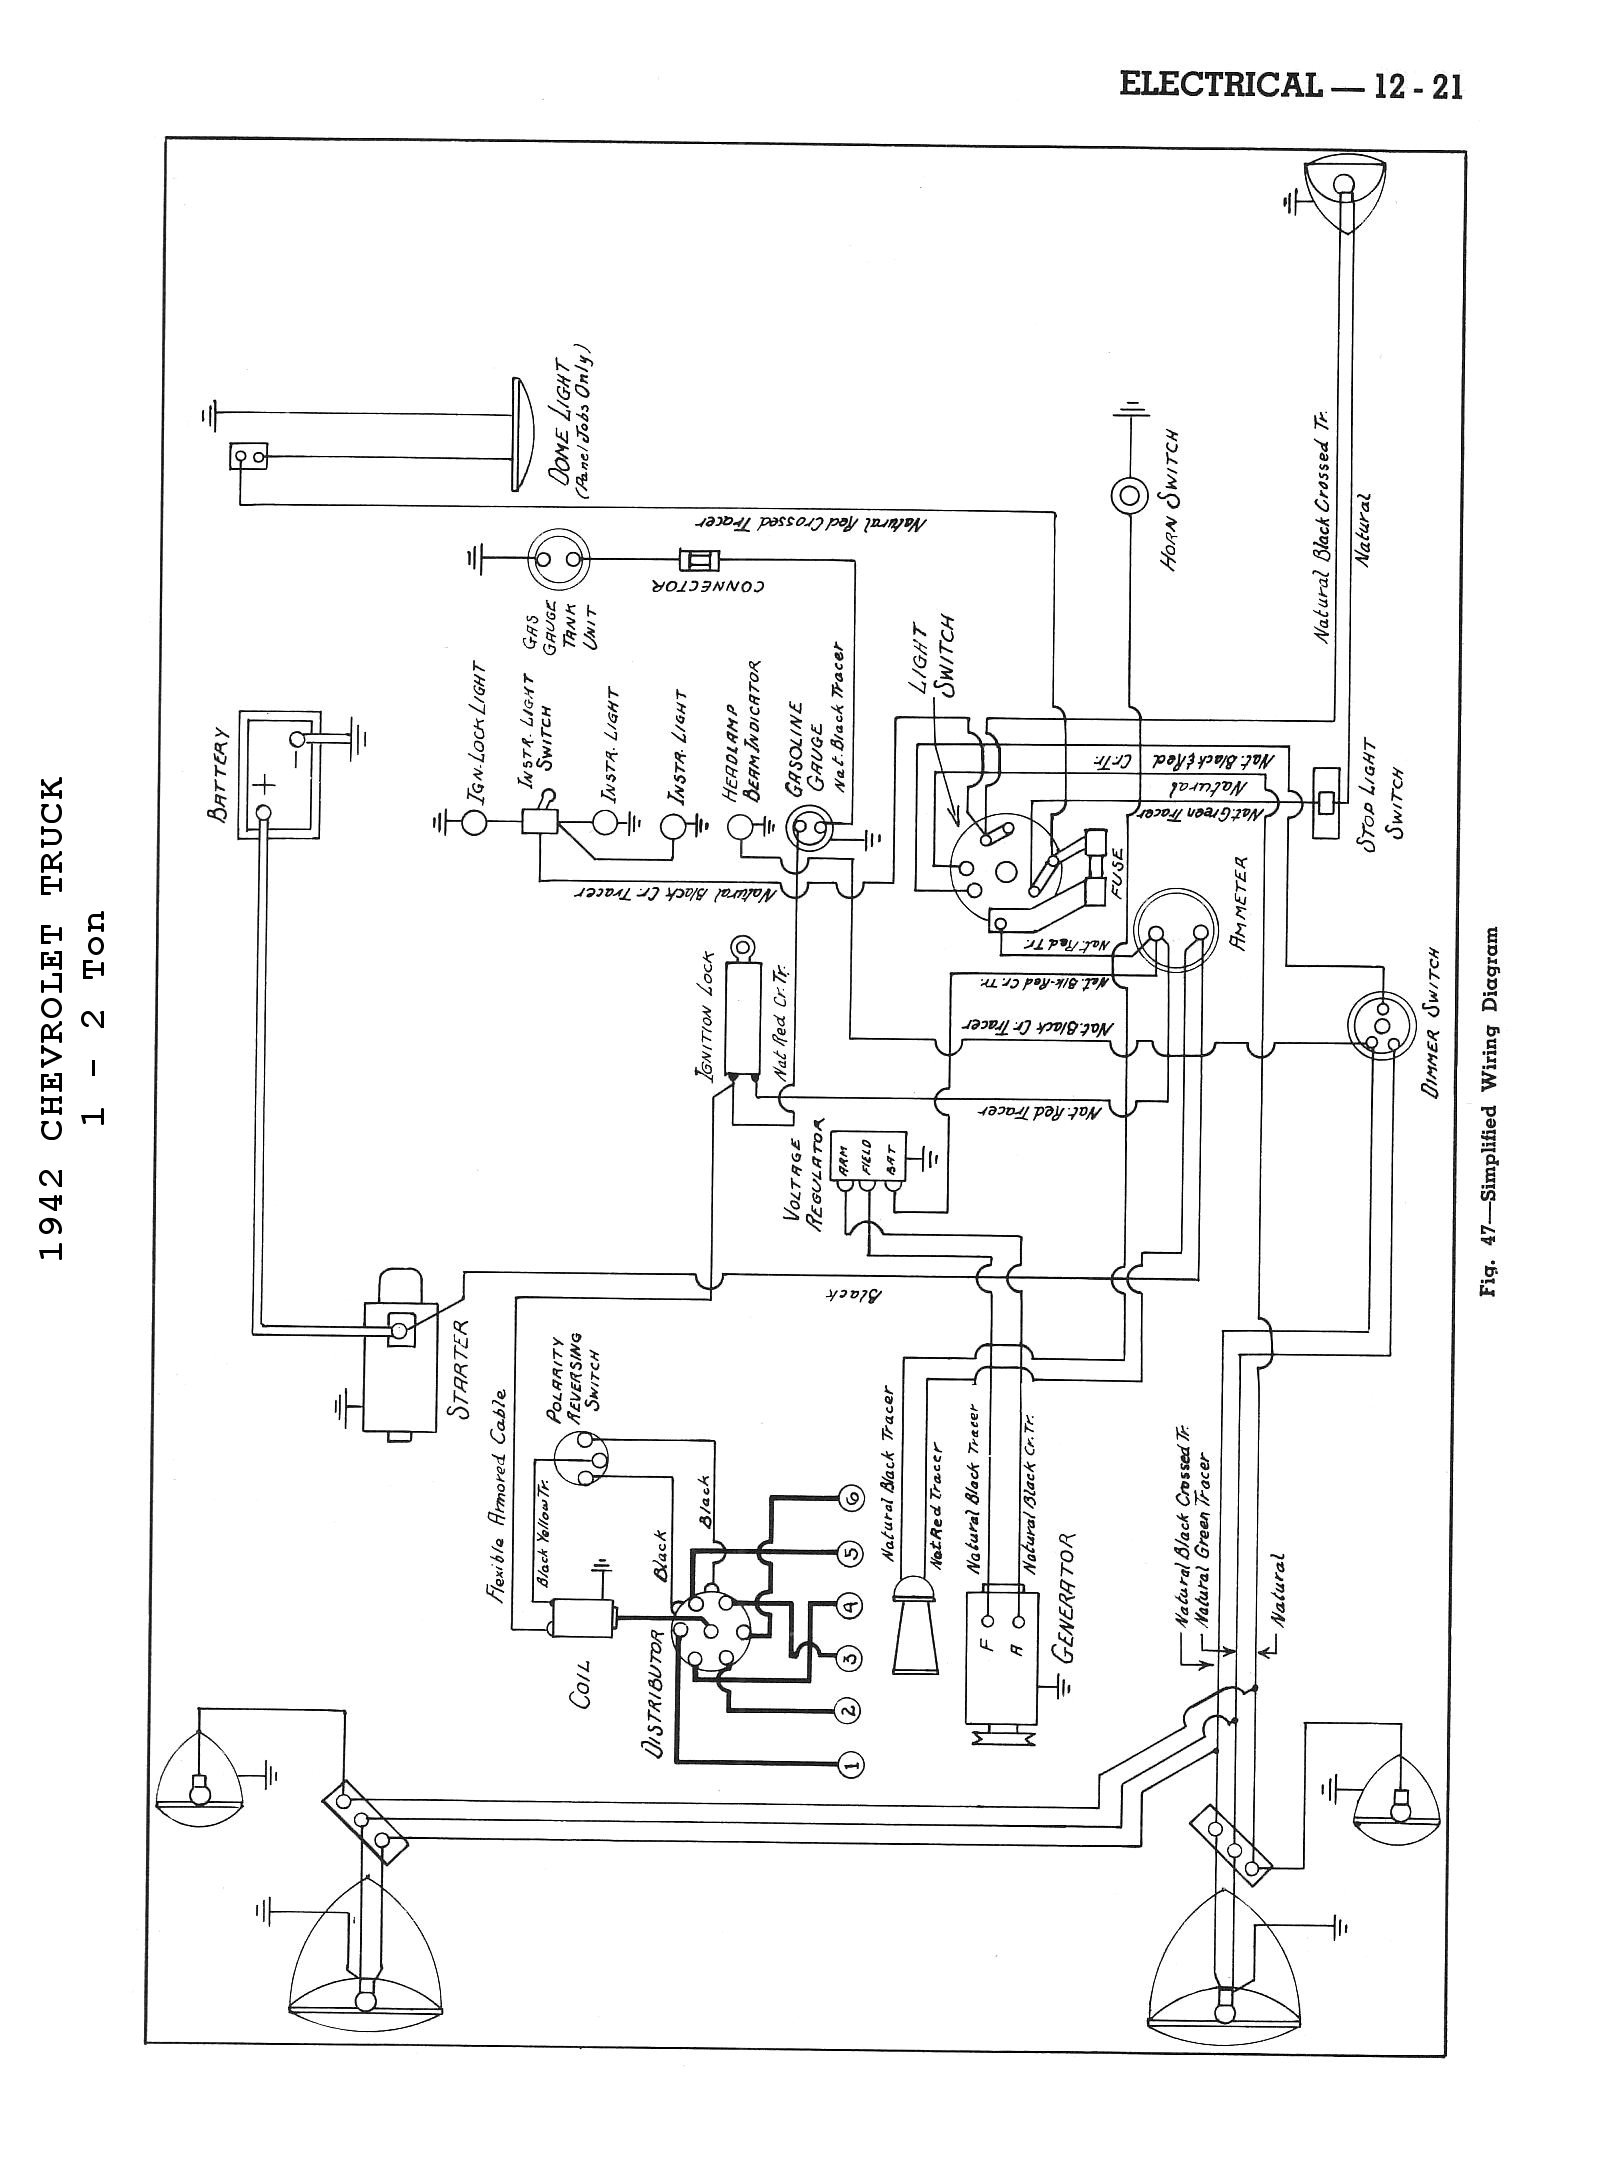 Wire Diagrams For 1939 Chevy Wire Circuit Diagrams - 5.geuzencollege on 1985 chevy truck wiring diagram, chevy truck ignition diagram, chevy turbo 400 transmission wiring diagram, chevy truck motor diagram, gm ignition switch wiring diagram, 2004 chevy malibu headlight wiring diagram, chevy truck spark plug wires diagram, 74 chevy truck wiring diagram, chevy silverado trailer wiring harness, 96 chevy truck wiring diagram, chevy truck headlight assembly diagram, chevy wiring schematics, speed sensor 1993 chevy wiring diagram, 1989 chevy truck wiring diagram, chevy truck radiator diagram, 1972 chevy truck wiring diagram, chevy truck fuse diagram, chevy truck transmission diagram, chevy truck master cylinder diagram, 63 chevy wiring diagram,